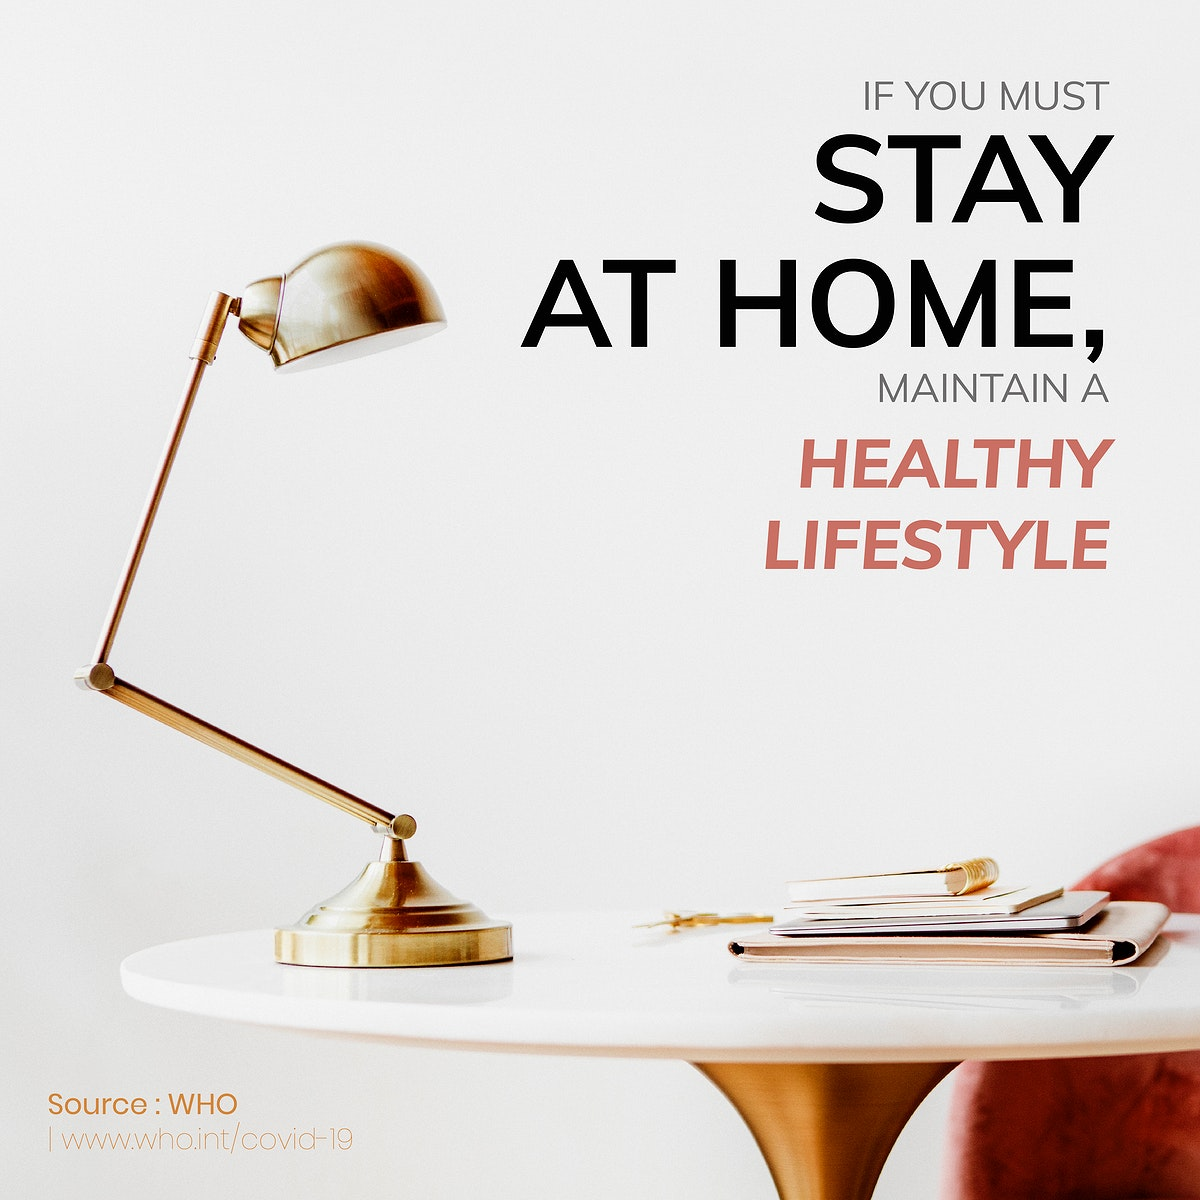 If you must stay home, maintain a healthy lifestyle social template source WHO vector